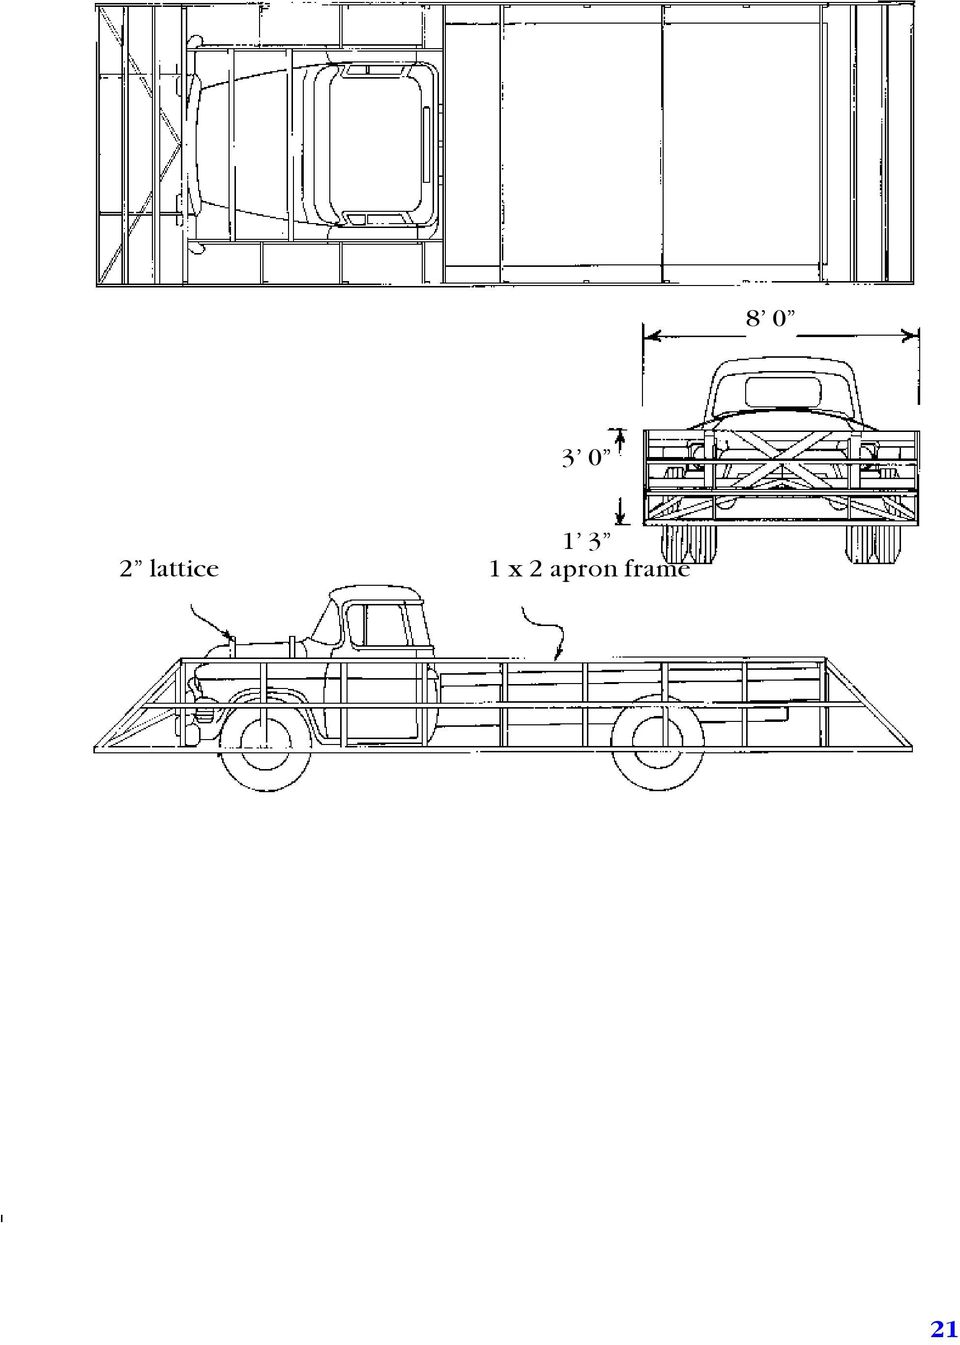 Part I For The Float Builder How To Build A Parade Pdf Gm Headlight Switch Wiring Diagram Http Wwwstoveboltcom Techtips 18 Camouflaging Truck Form Wallboard Cutouts Can Be Used Hide Cab And Also Produce Sweeping Shape At Rear Of Platform